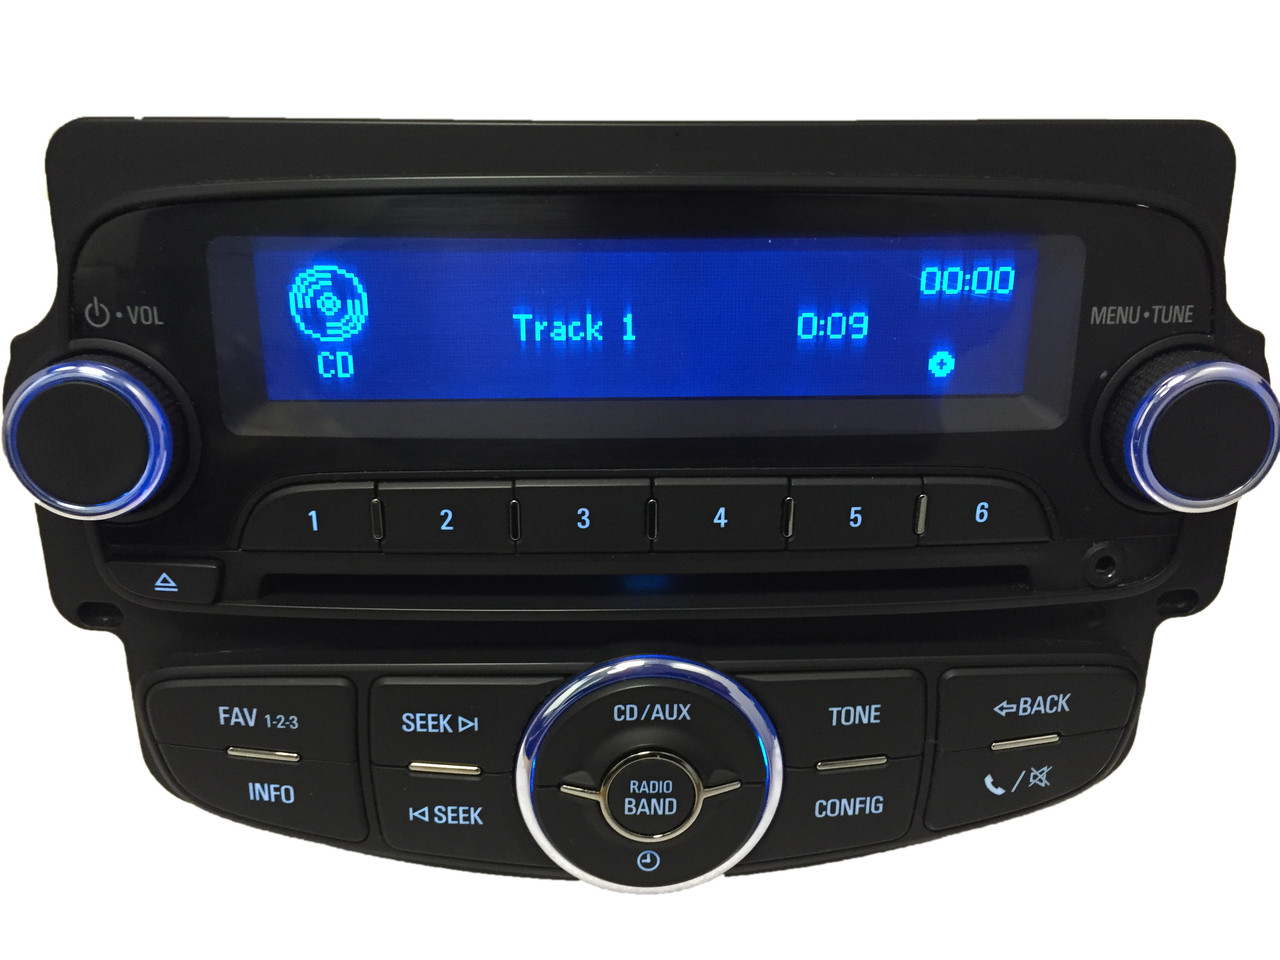 Details about Chevy SONIC OEM Radio Stereo AM FM AUX XM MP3 USB CD Player  UH7 Wireless Phone